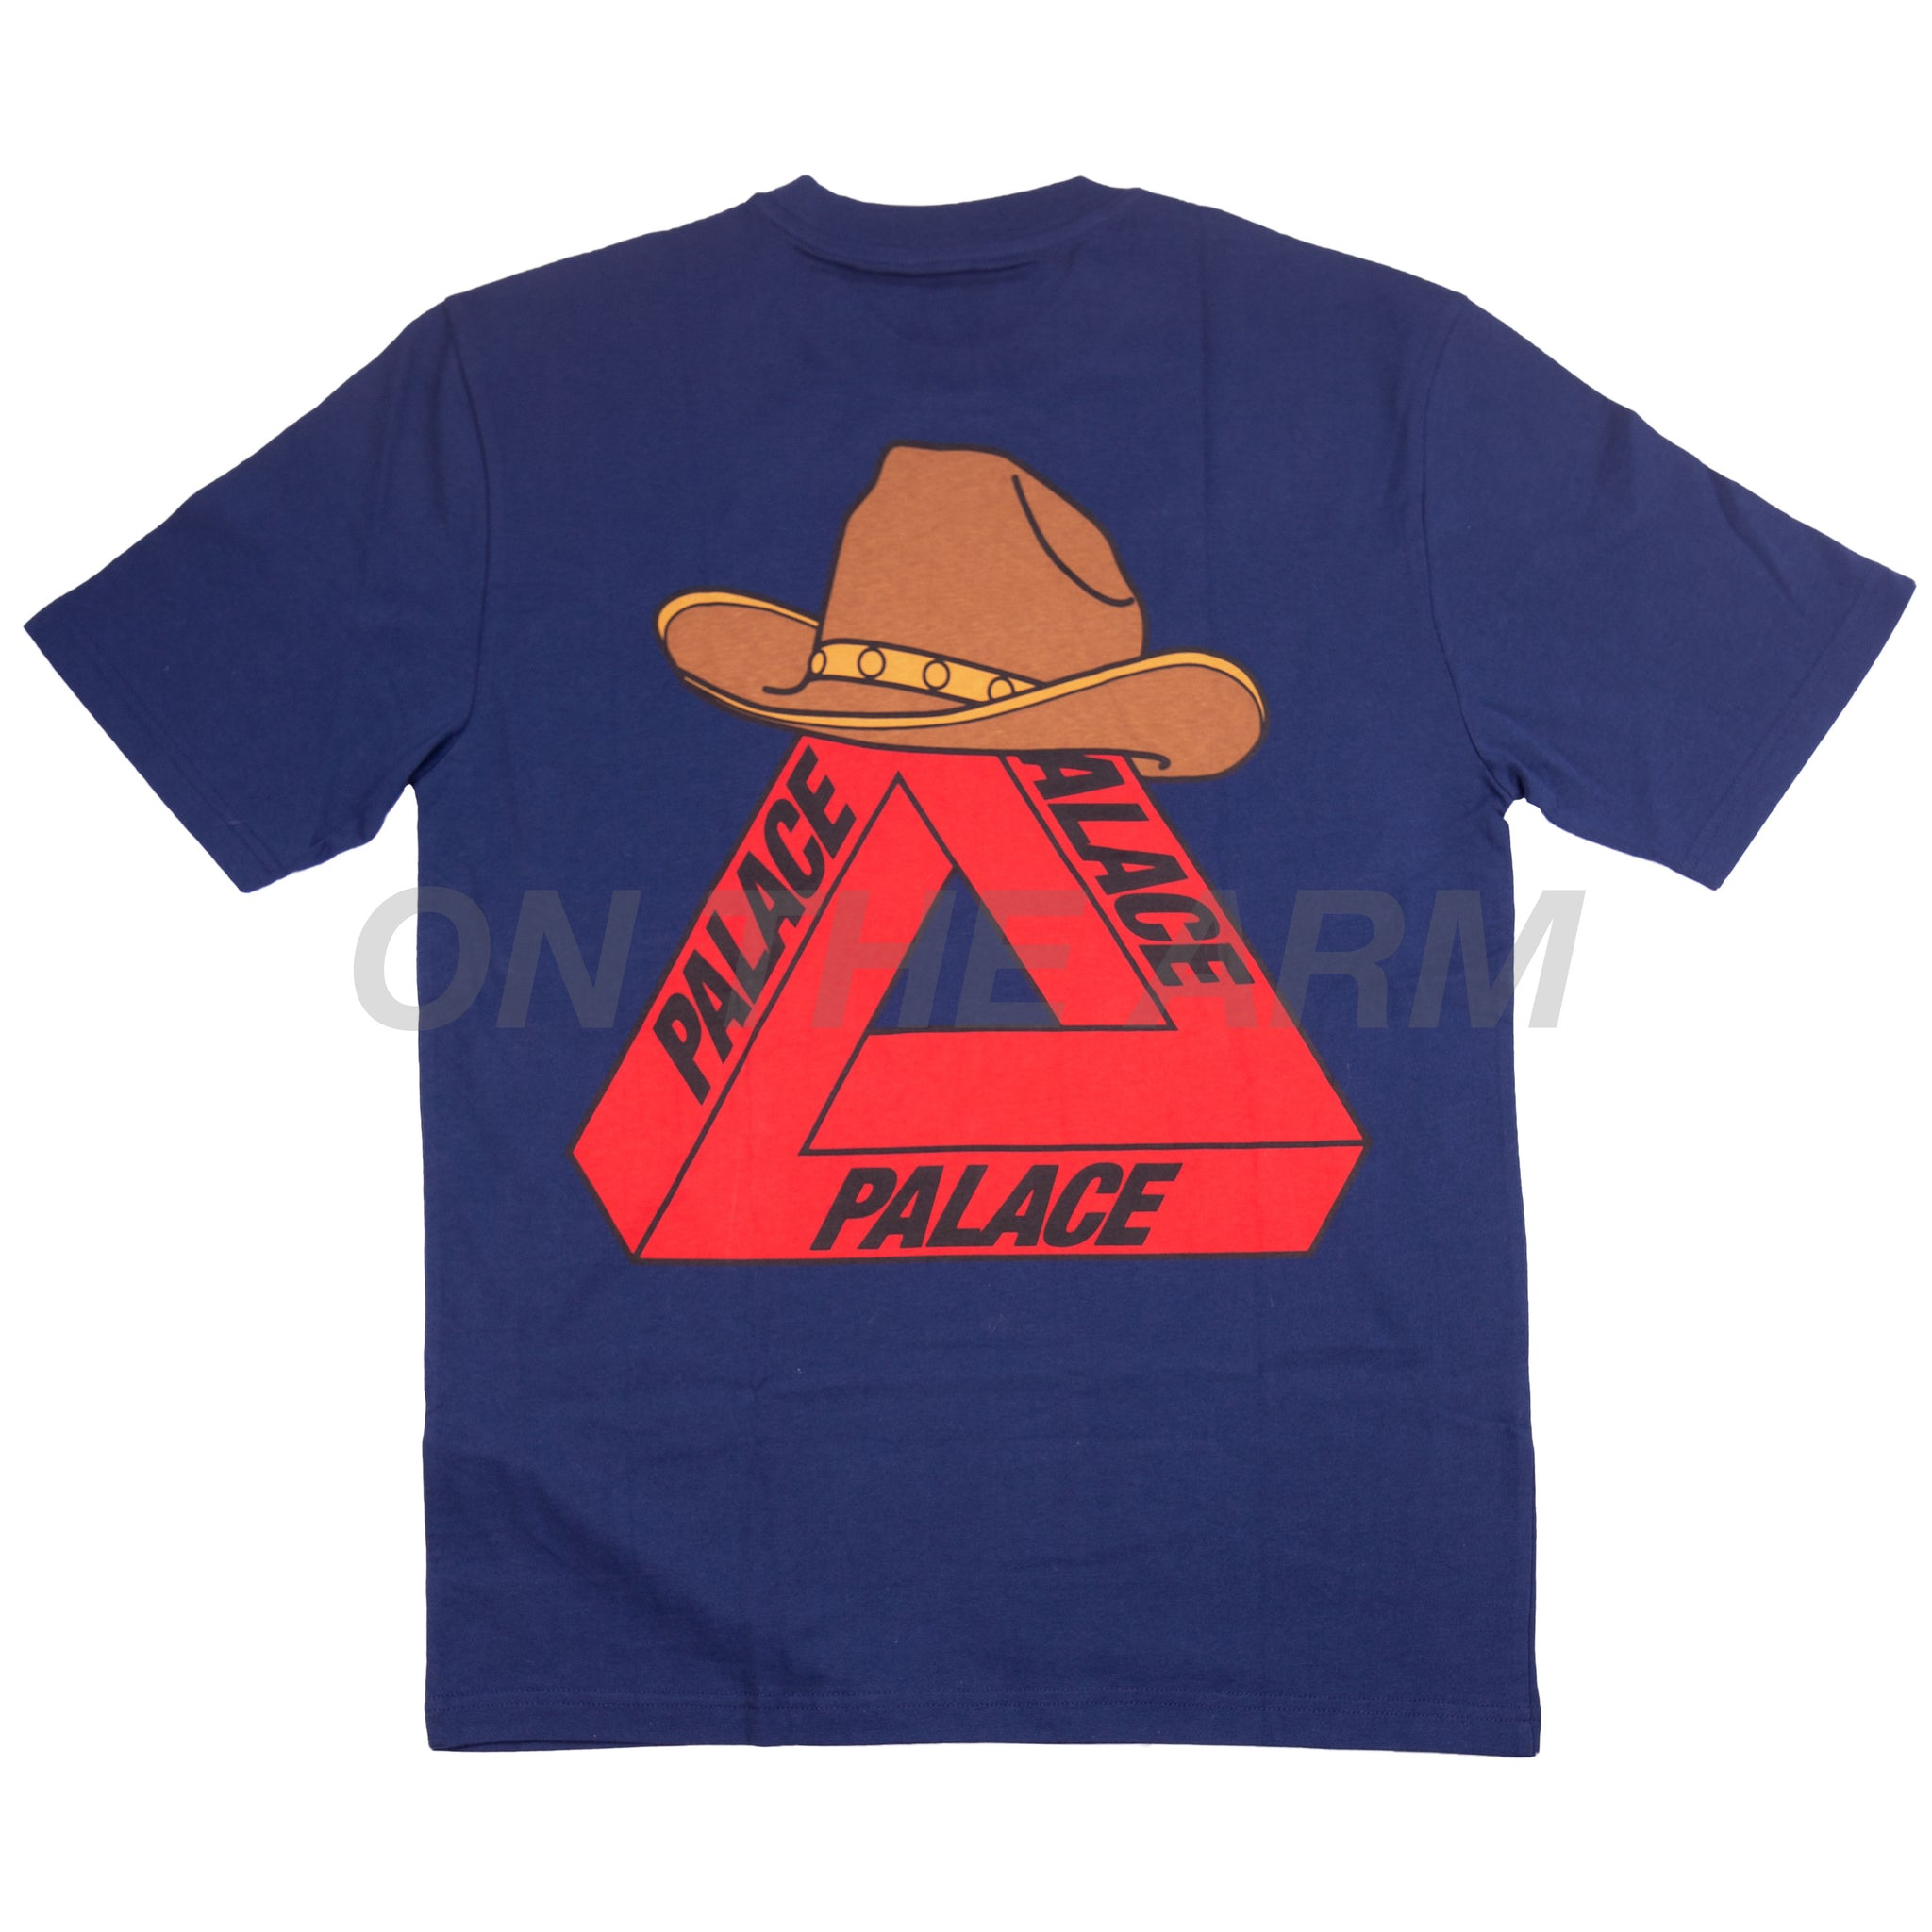 Palace Navy New York Opening Tri Ferg Tee